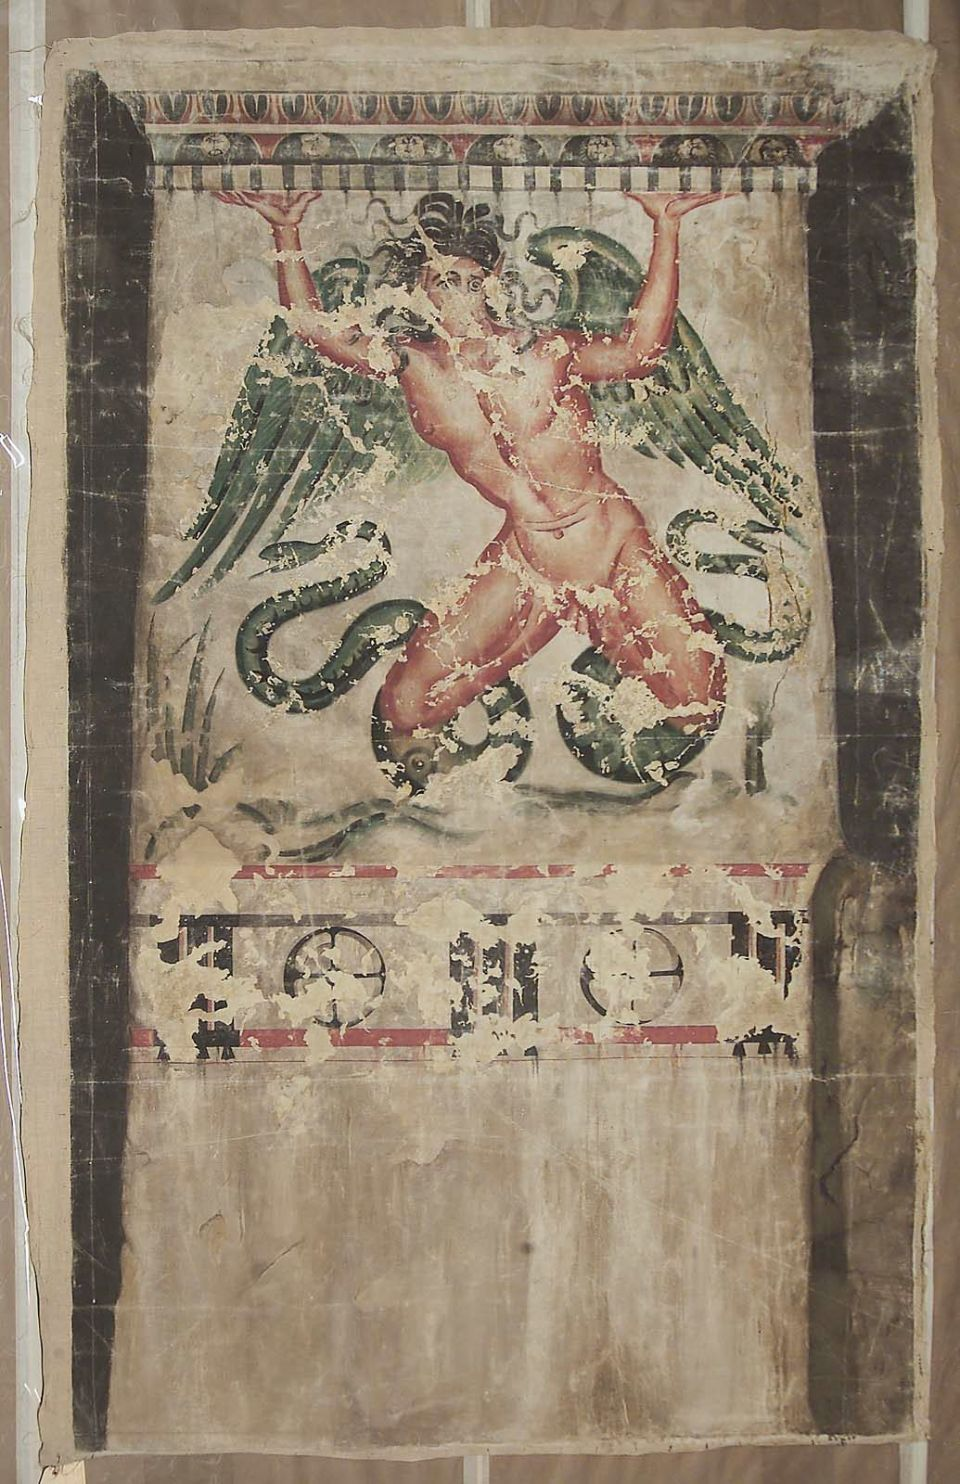 Demon. Original in the Tomba del Trifone (Tarquinia, late 3rd cent. B.C.). Typhon supporting the pillar, triglyphmetope frieze below, decorated moulding above. (NY Carlsberg Glyptotek Catalogue)